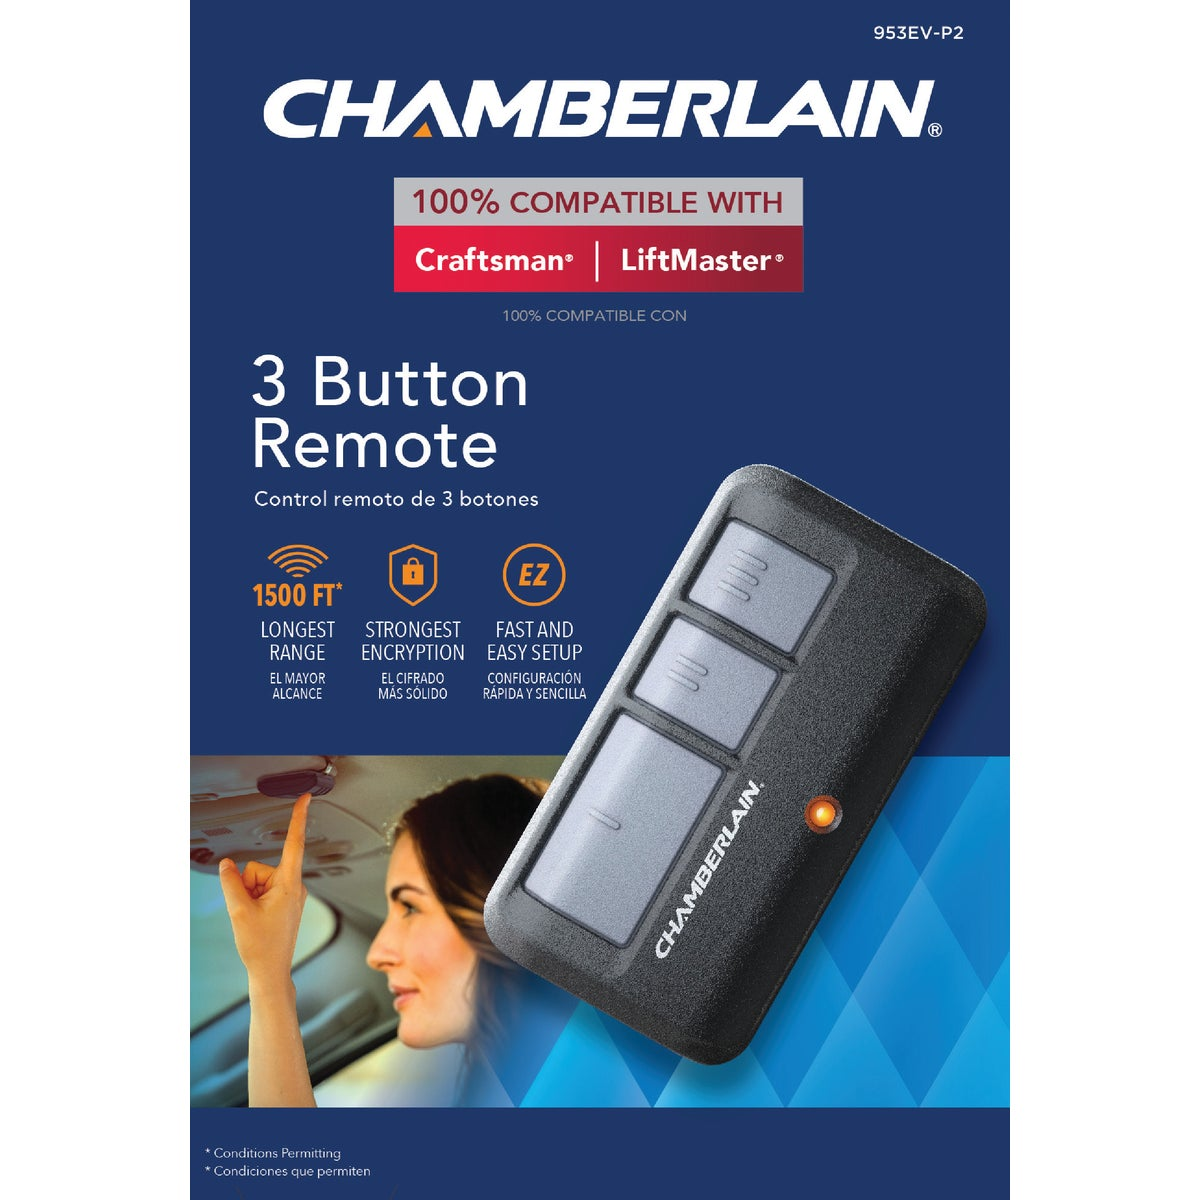 3 BUTTON GARAGE REMOTE - 953EV by Chamberlain